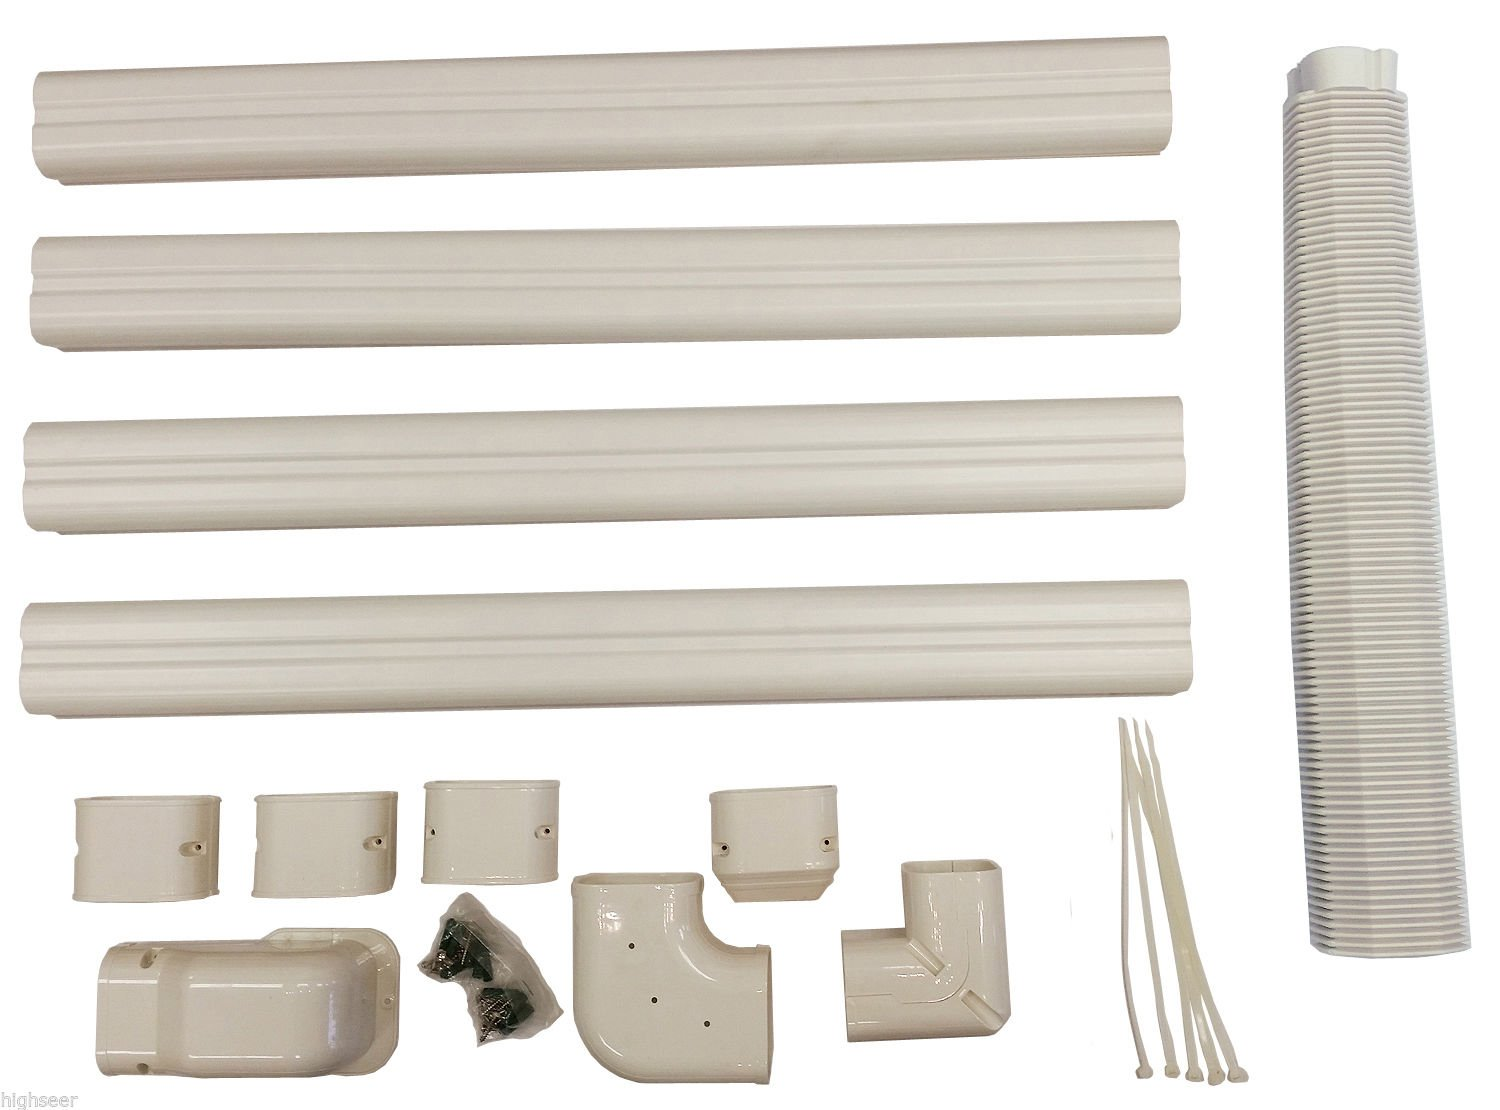 Decorative PVC Line Cover Kit for Mini Split Air Conditioners and Heat Pumps by PIONEER Air Conditioner